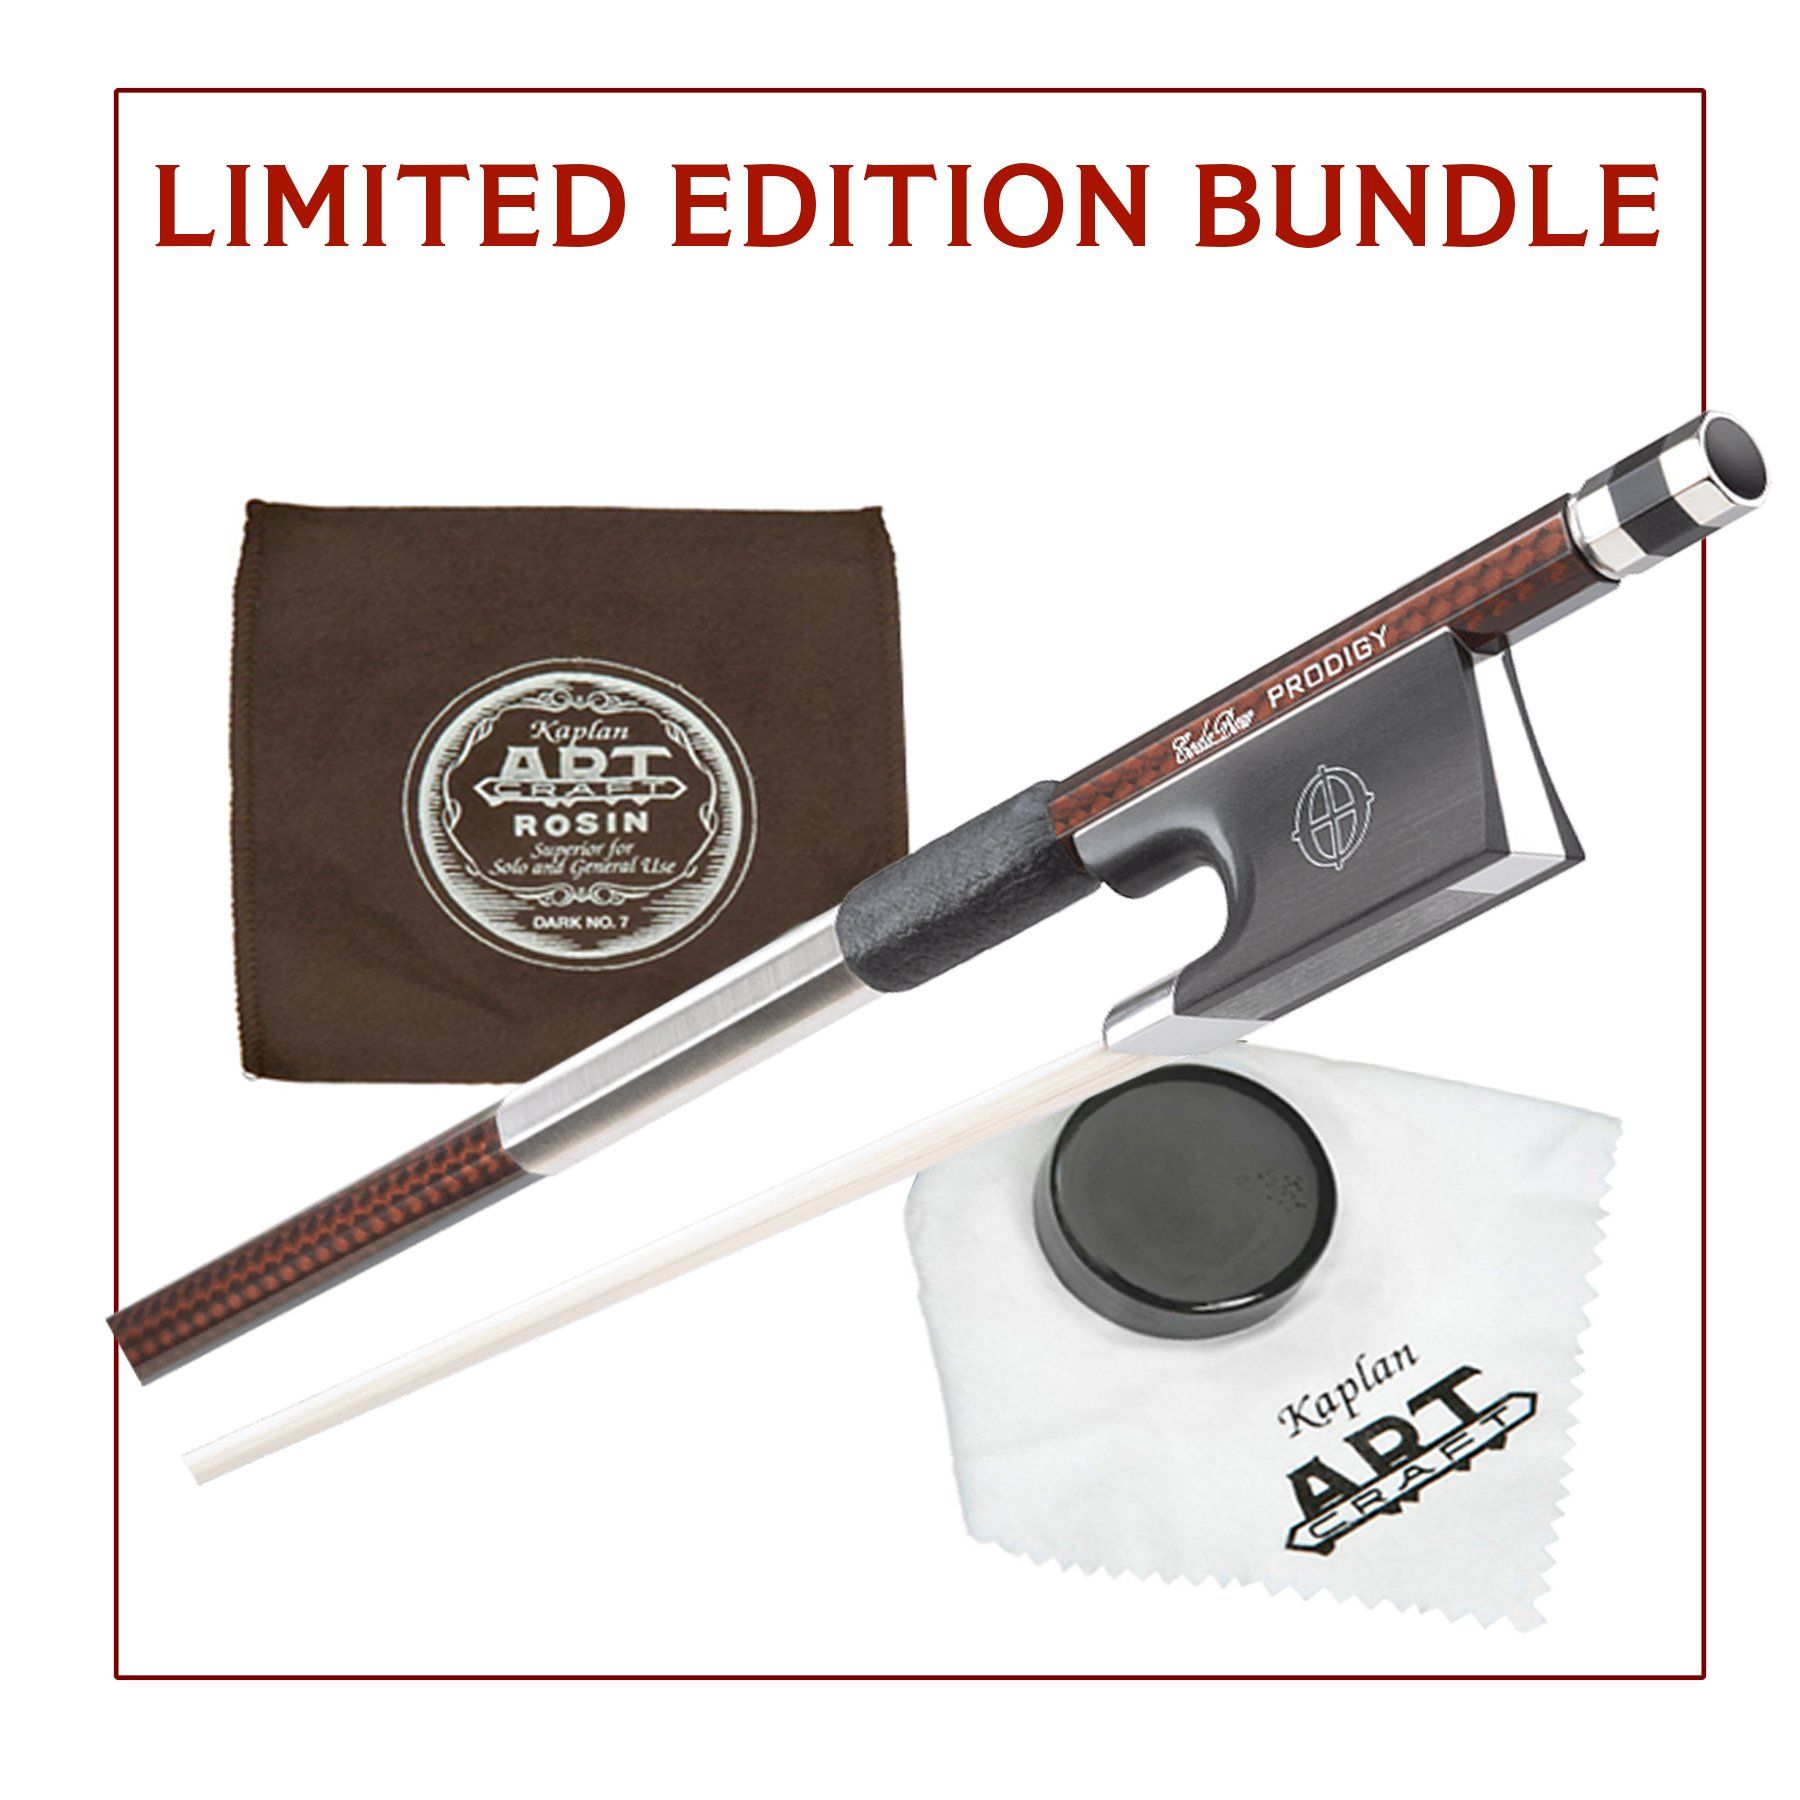 Prodigy Limited Edition Bundle in action